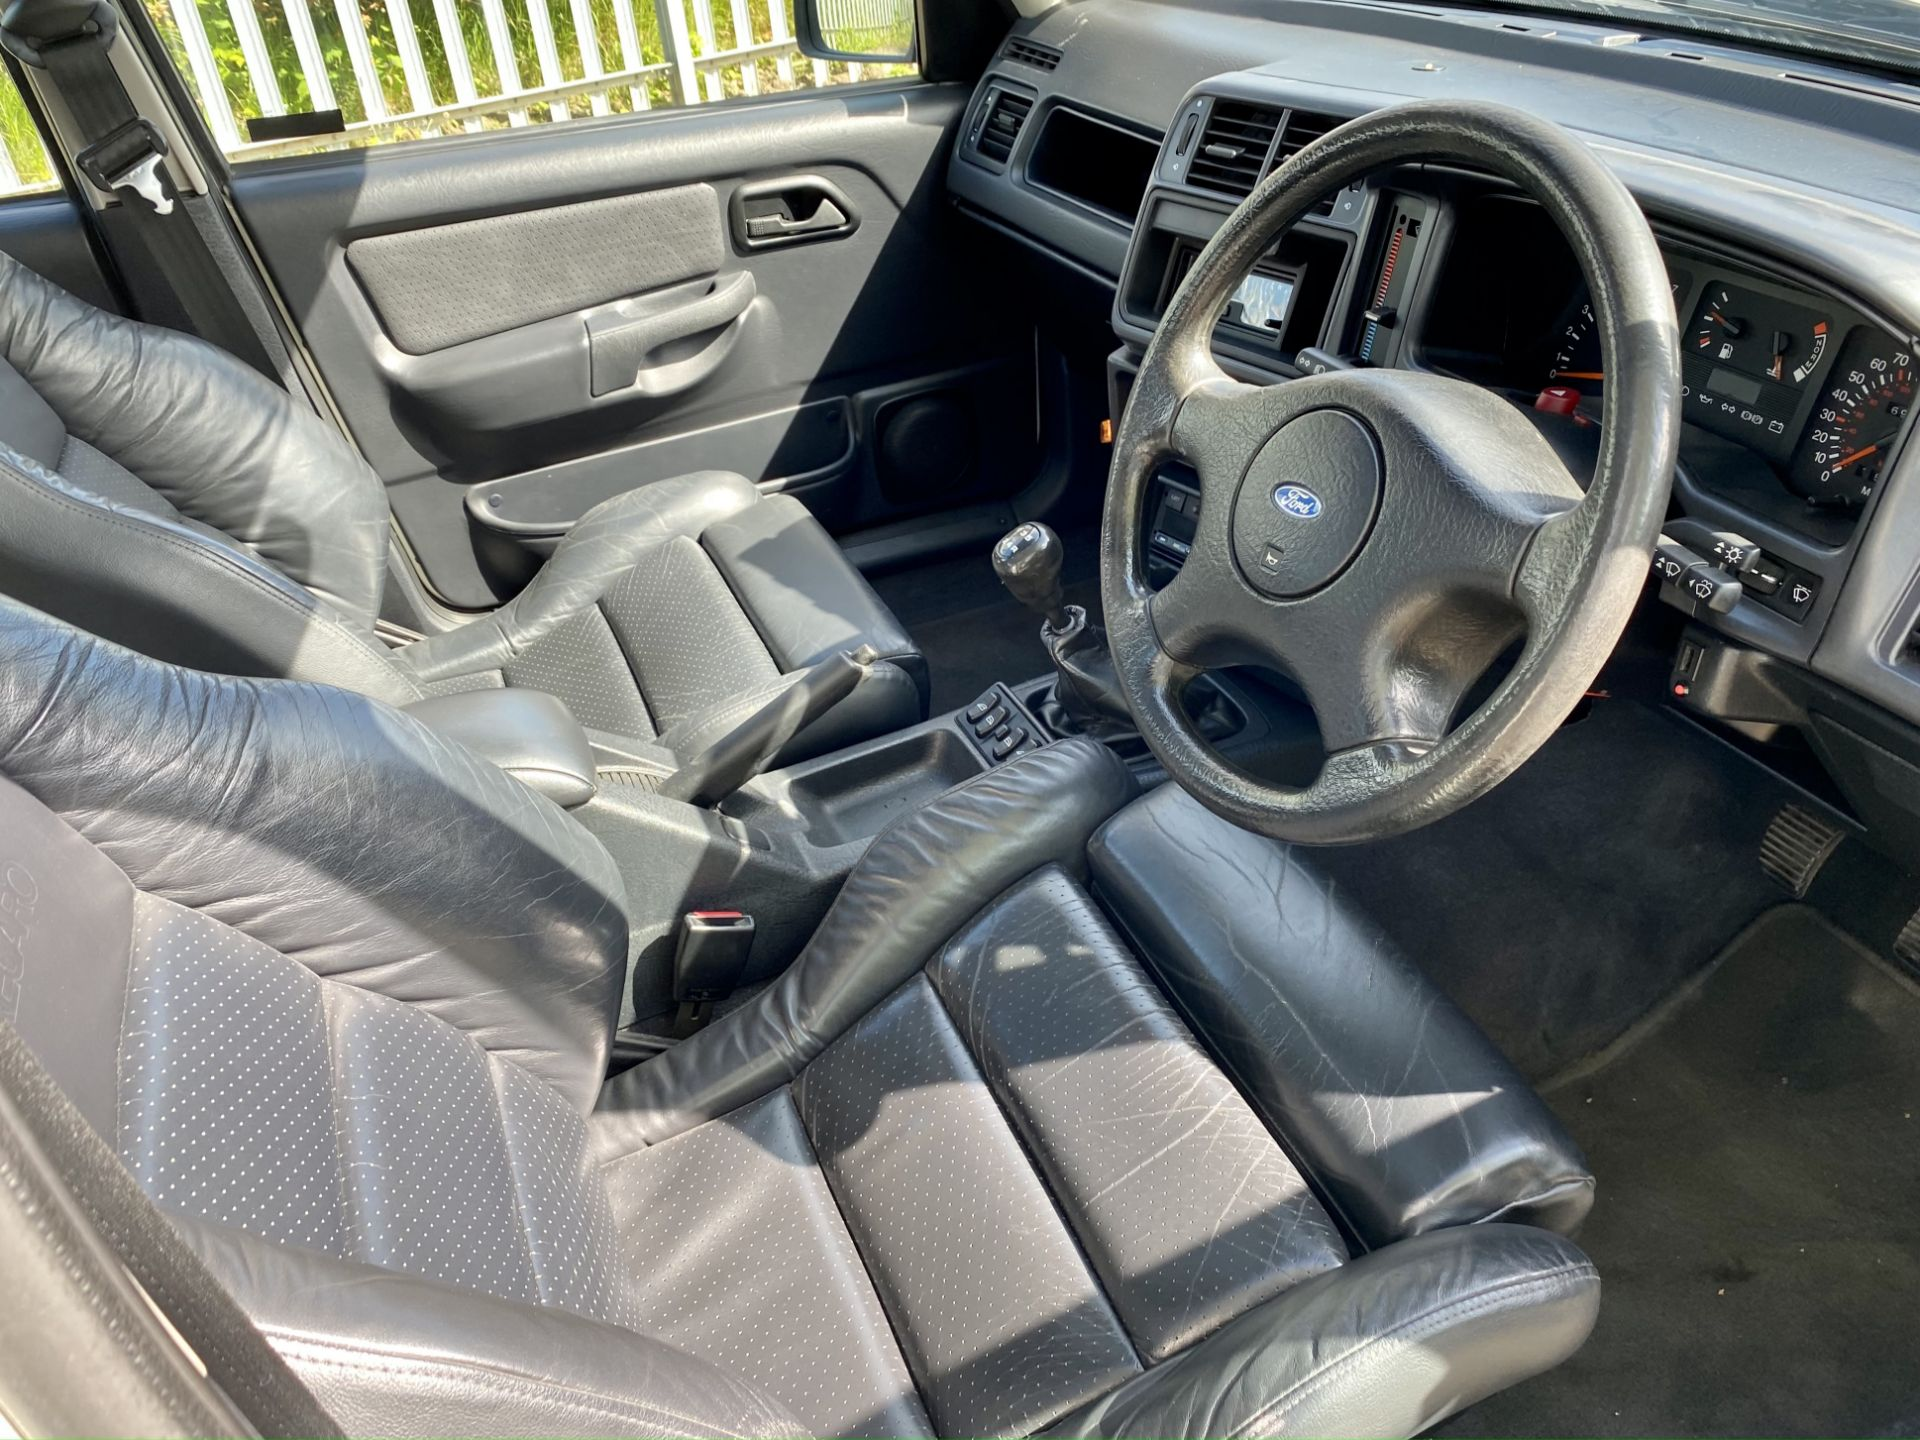 Ford Sierra Sapphire Cosworth 4x4 - Image 30 of 55